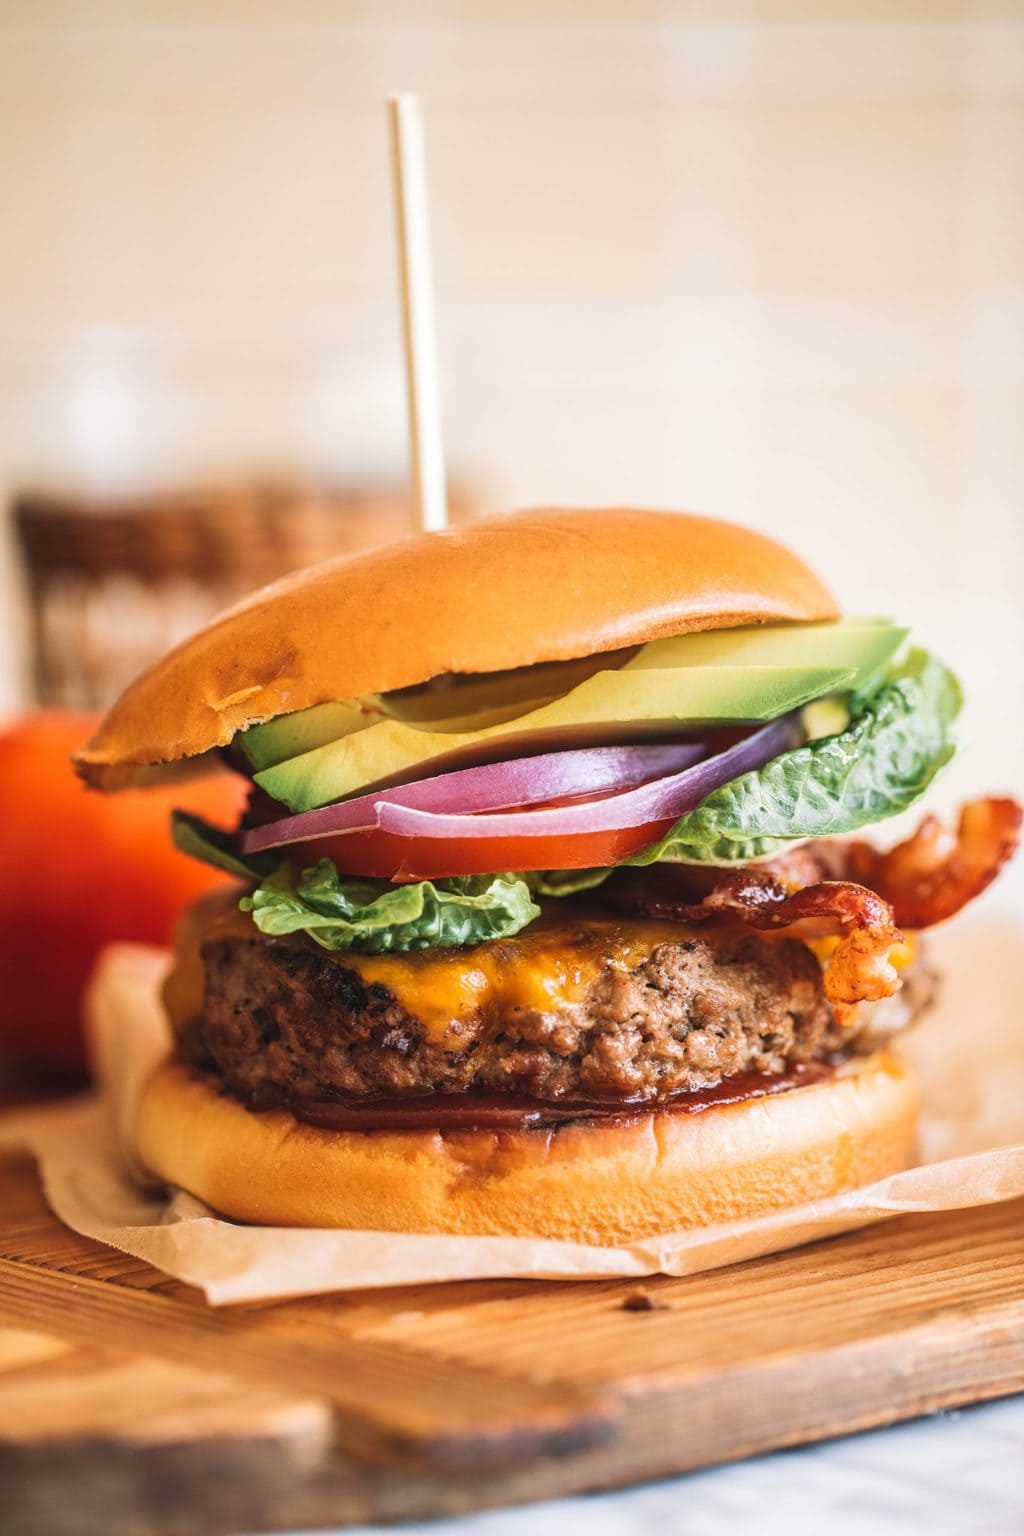 Avocado bacon burger served on a wooden board with a skewer.